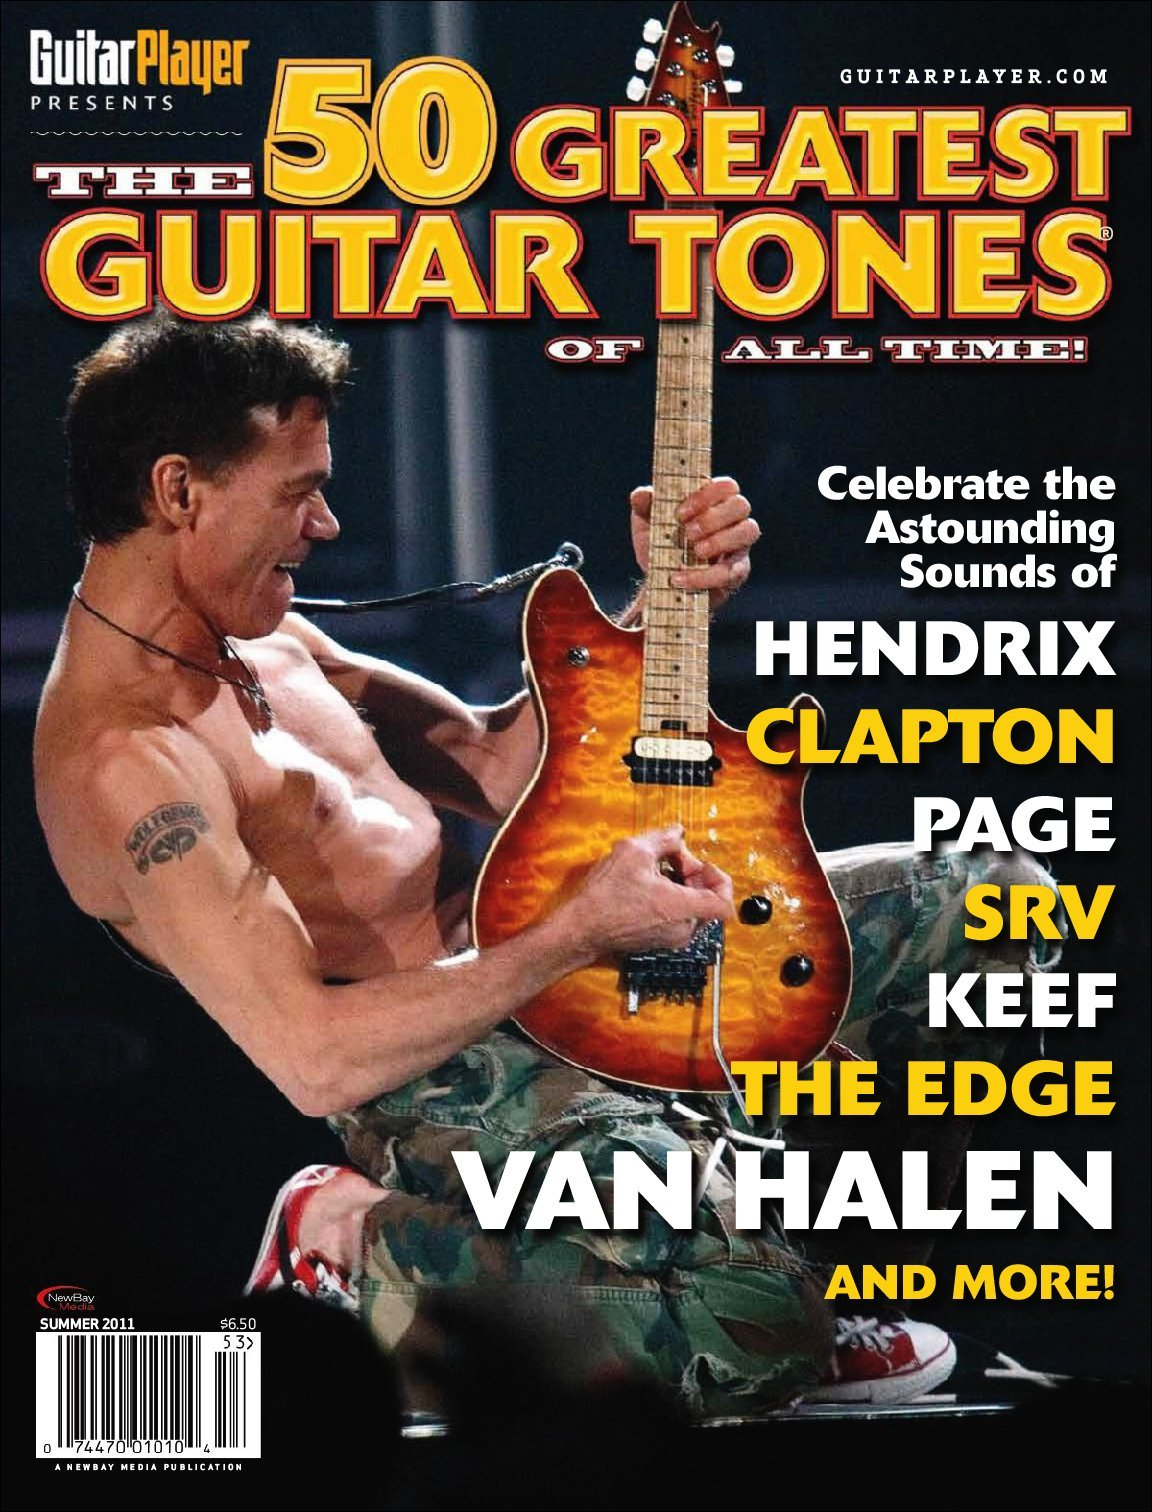 GUITAR PLAYER PRESENTS The 50 Greatest Guitar Tones of All Time Digital